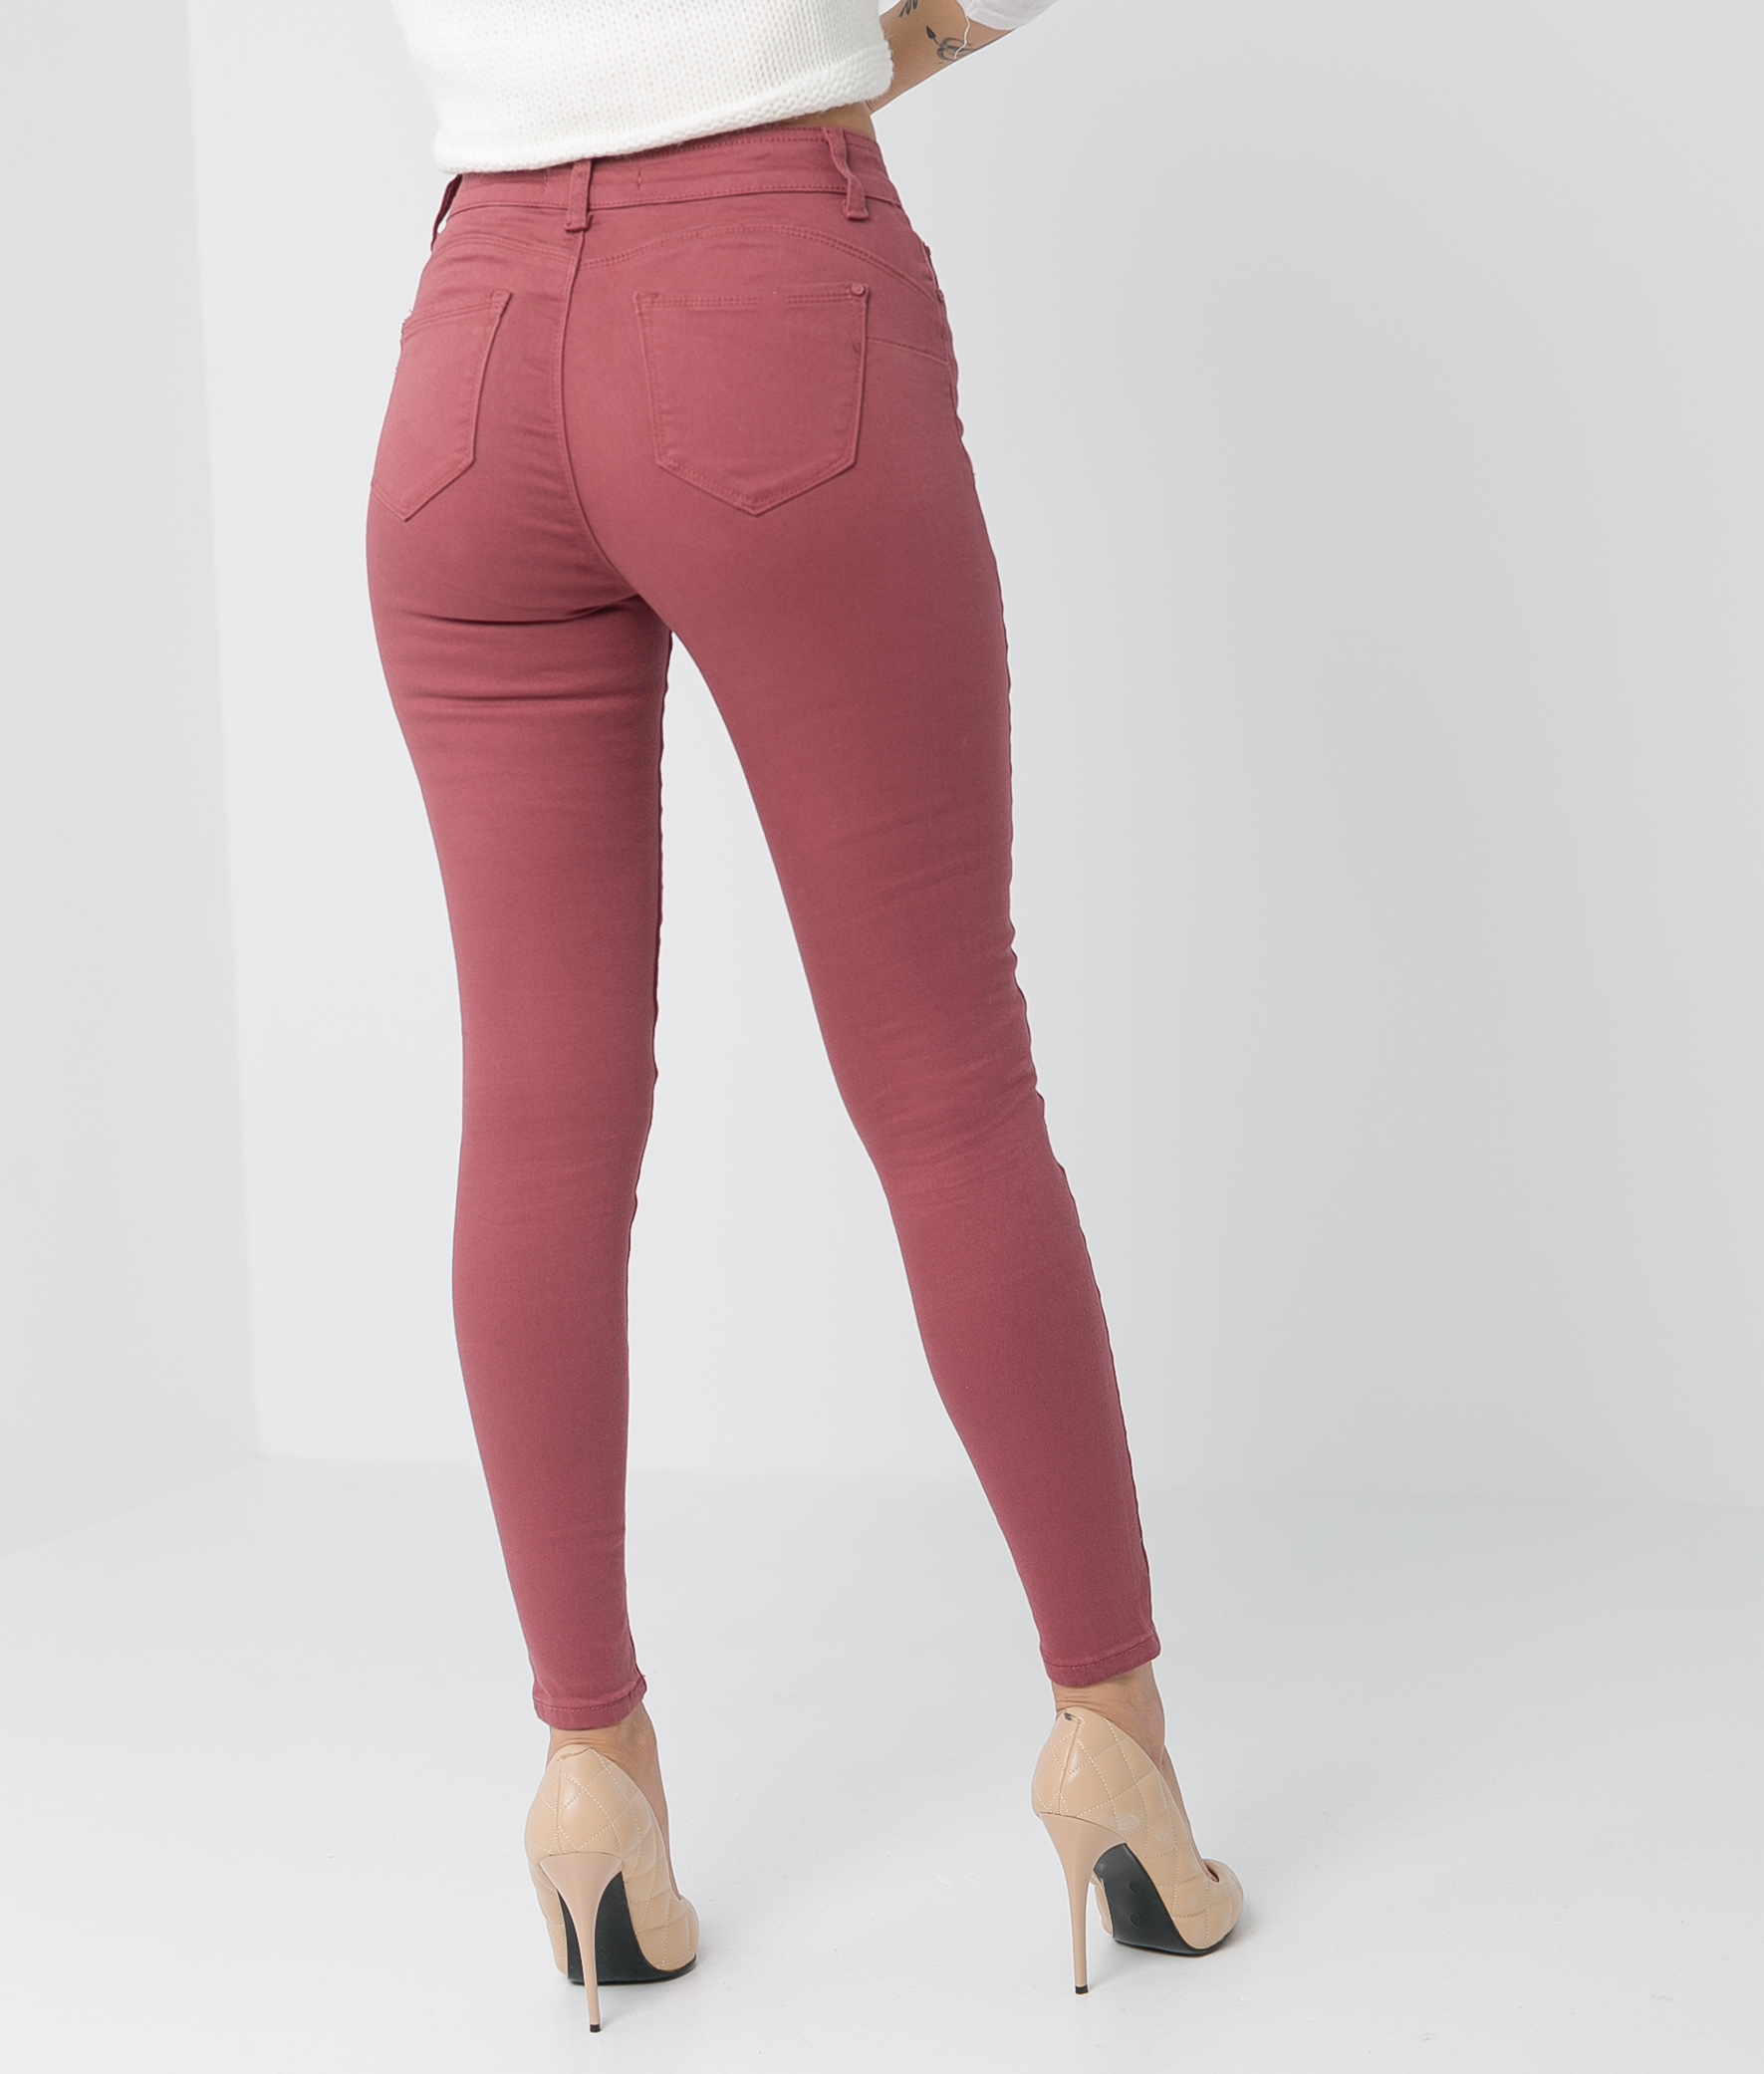 Trousers Glater - Maroon